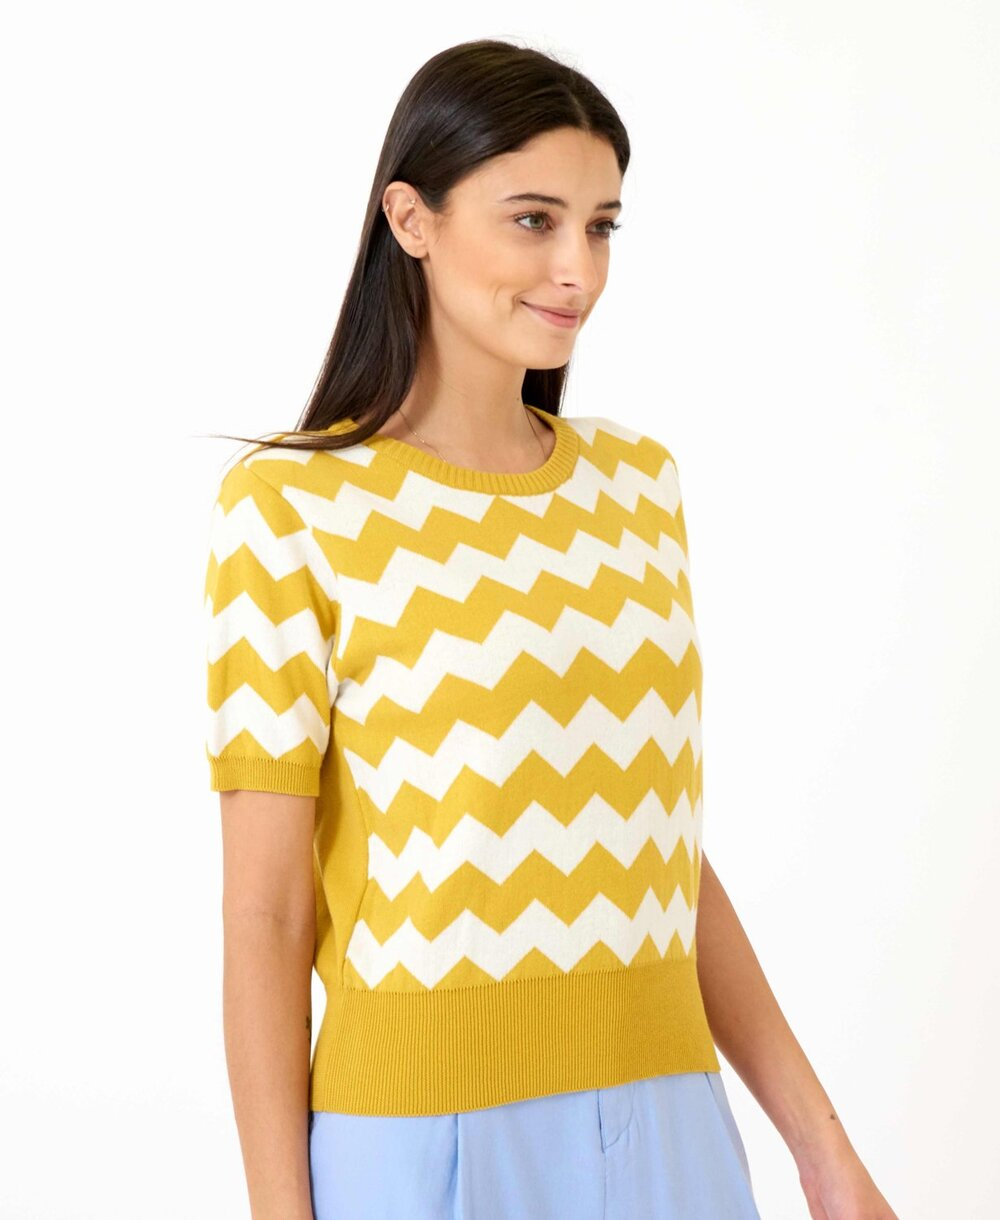 alexa-knit-yellow-45_2000x2000